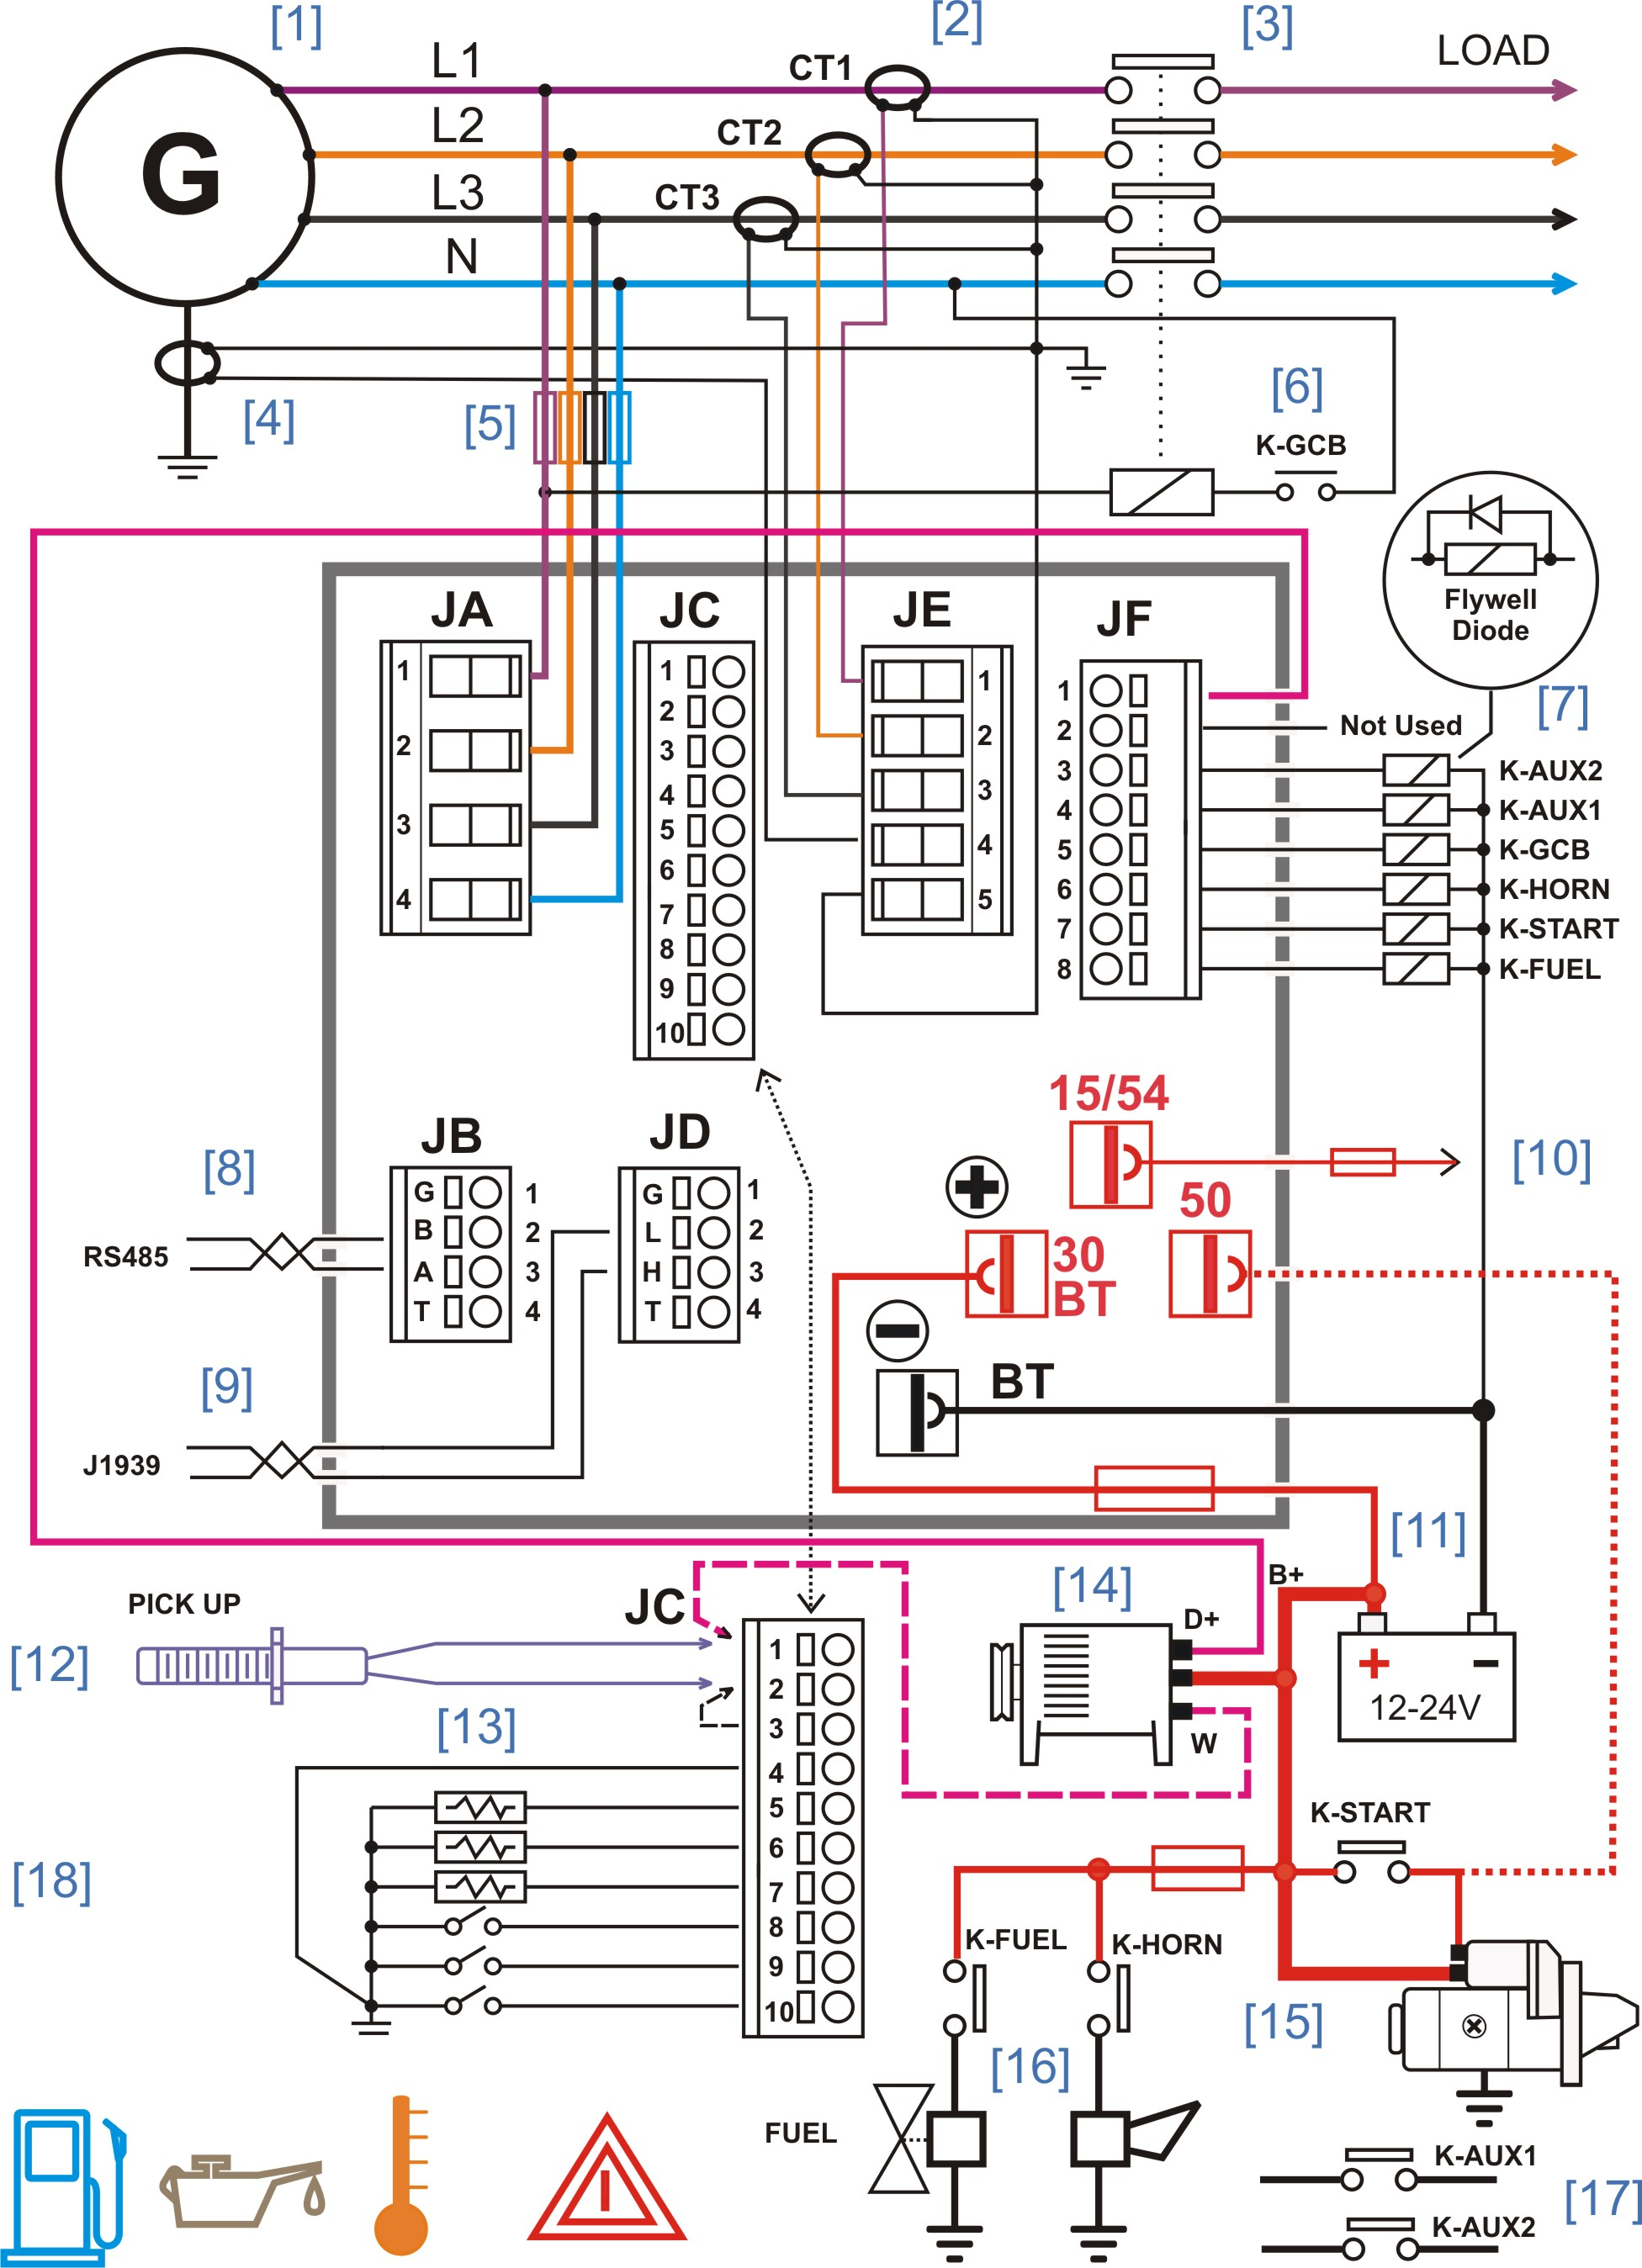 control wiring diagrams wiring diagrams schematics rh alexanderblack co electric service panel wiring diagram electrical panel wiring diagram